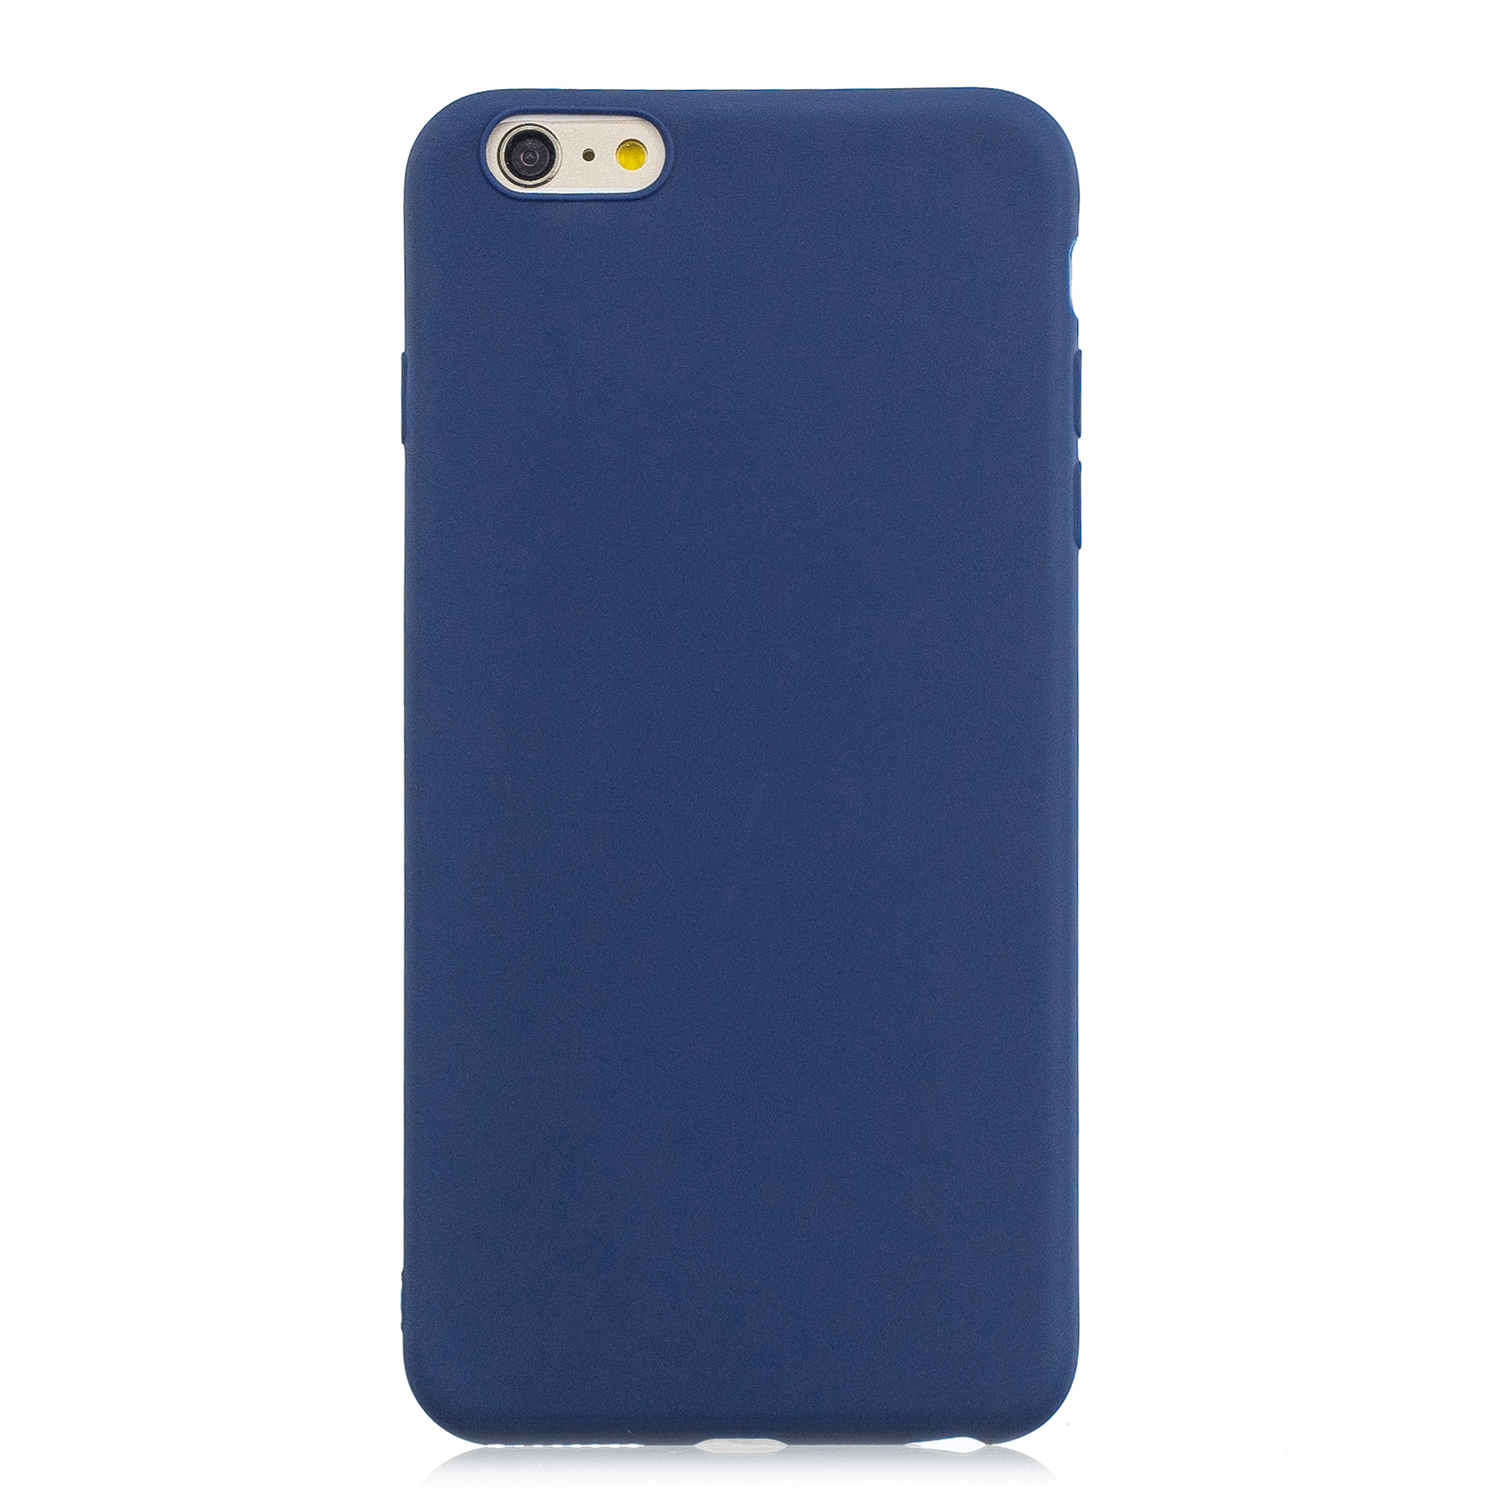 for iPhone 6/6S Lovely Candy Color Matte TPU Anti-scratch Non-slip Protective Cover Back Case Navy